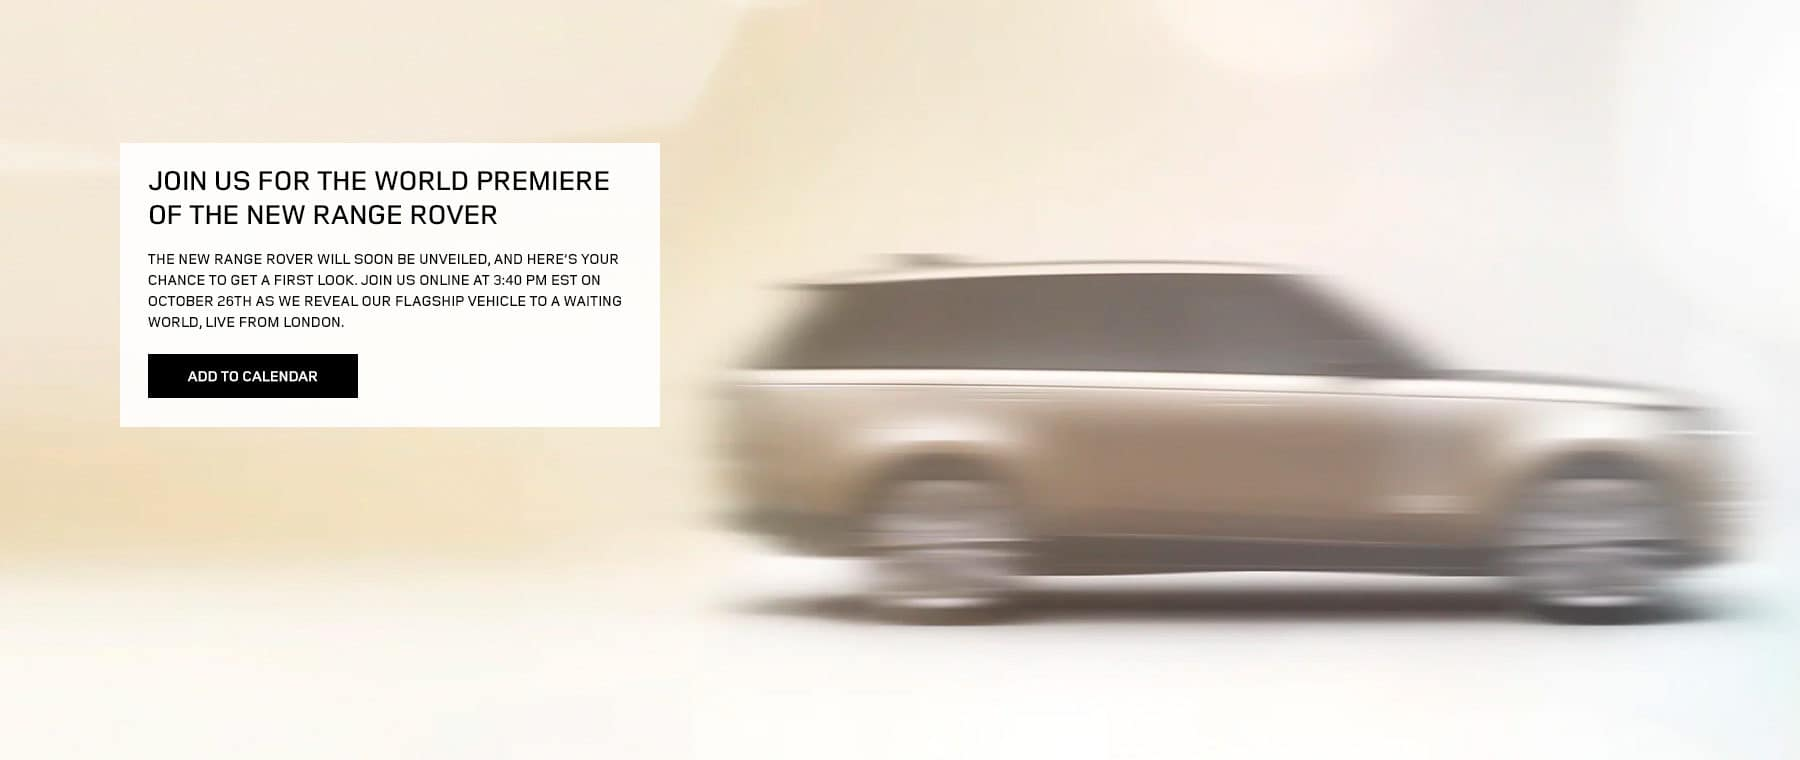 JOIN US FOR THE WORLD PREMIERE OF THE NEW RANGE ROVER. The New Range Rover will soon be unveiled, and here's your chance to get a first look. Join us online at 3:40 PM EST on October 26th as we reveal our flagship vehicle to a waiting world, live from London.